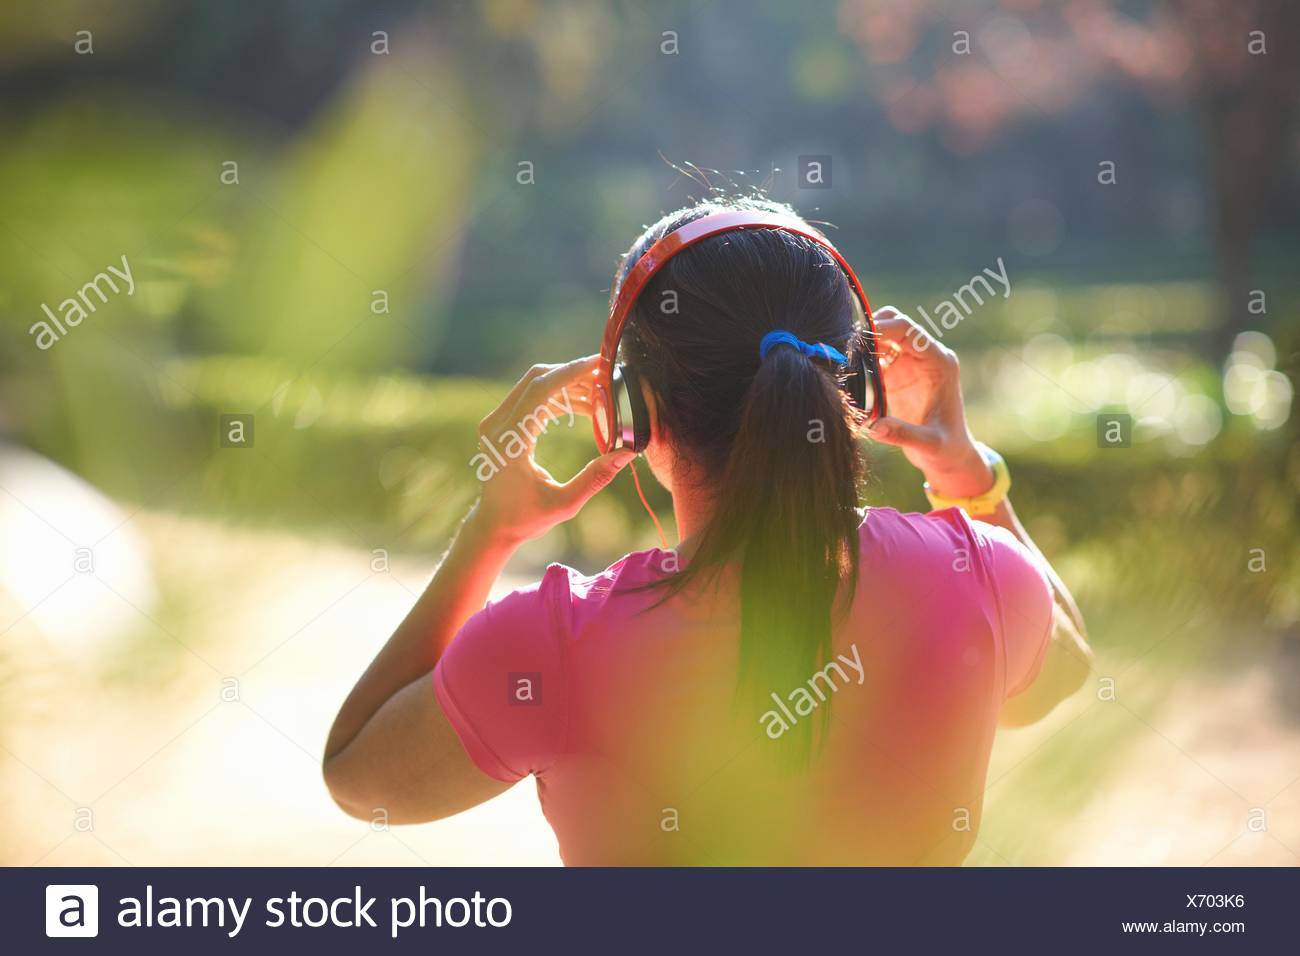 Rear view of mature woman with pony tail wearing headphones - Stock Image